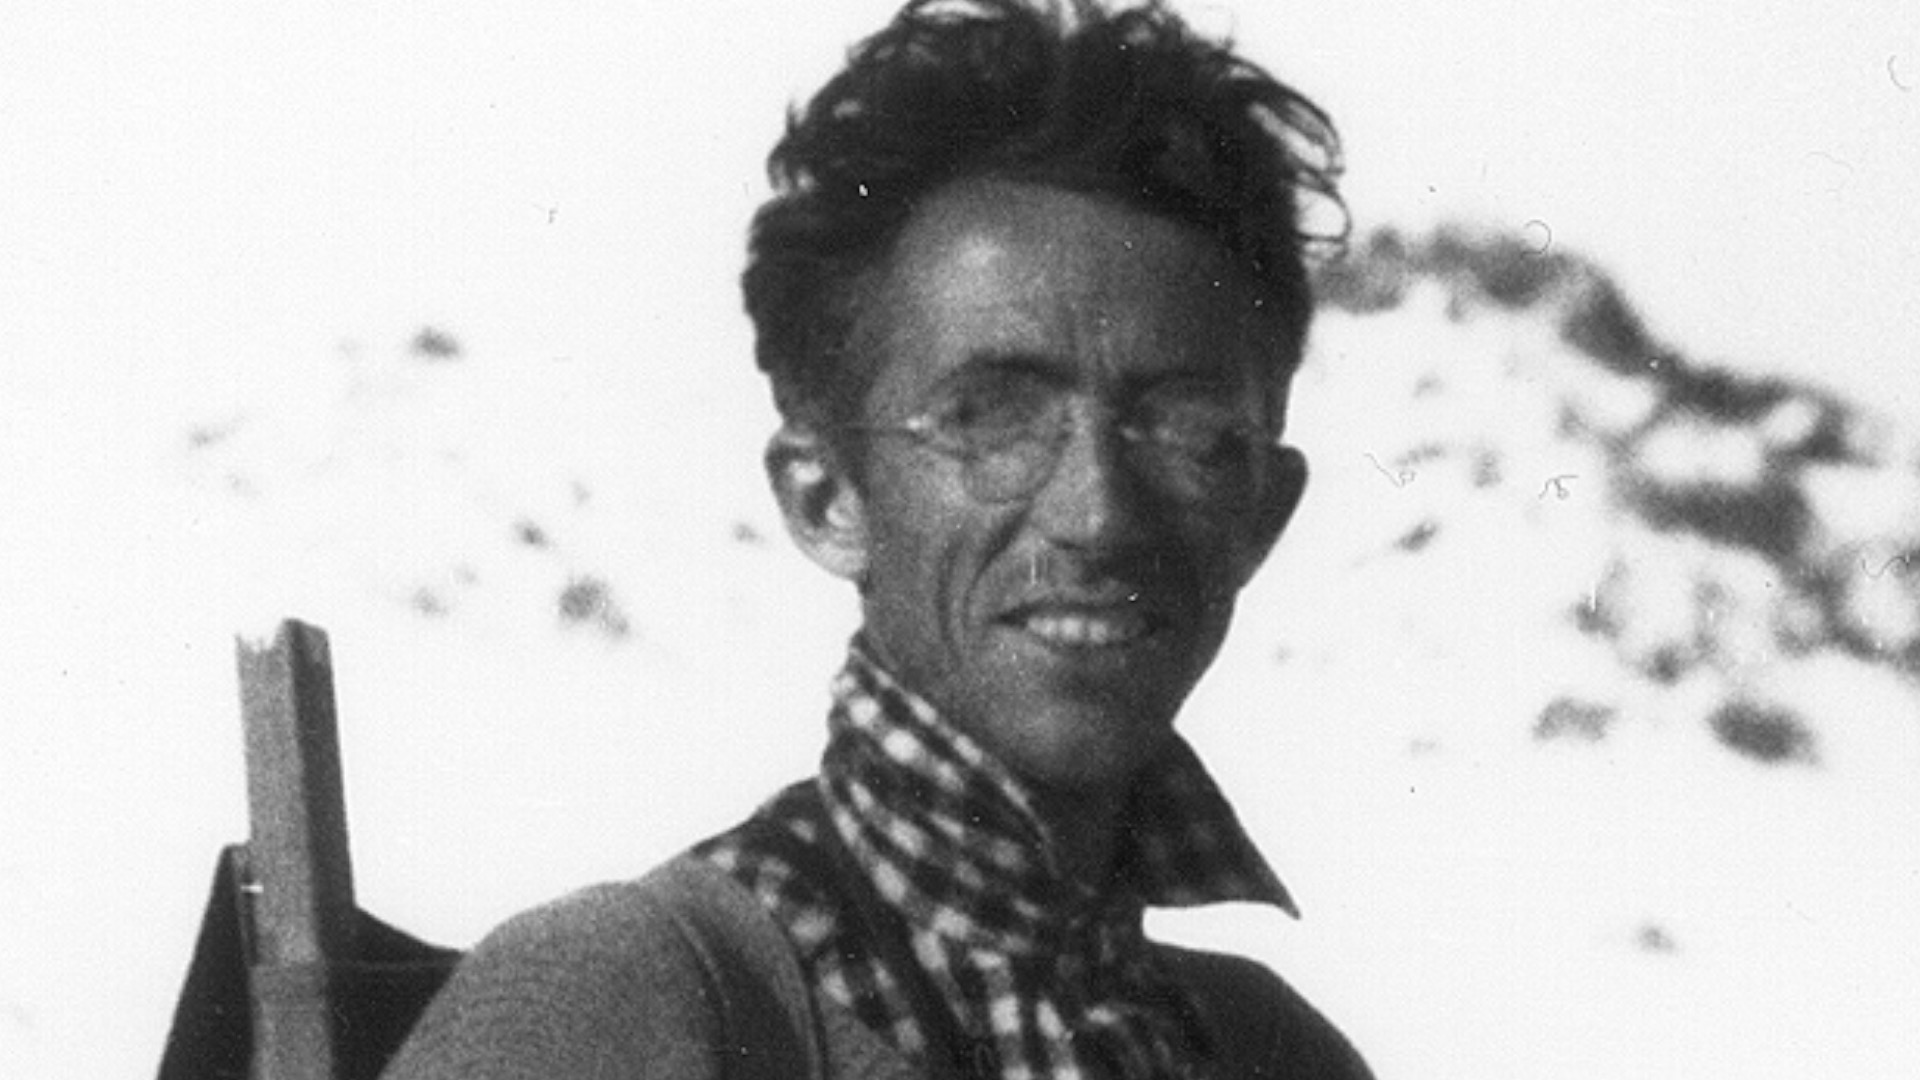 Wildlife biologist and wilderness advocate Adolph Murie. He received a doctorate from the University of Michigan in 1929 before starting a long career at the National Park Service. A copy of his 1935 report on Isle Royale is in the correspondence files of the U-M Museum of Zoology's mammal collections. Photo courtesy of the National Park Service.